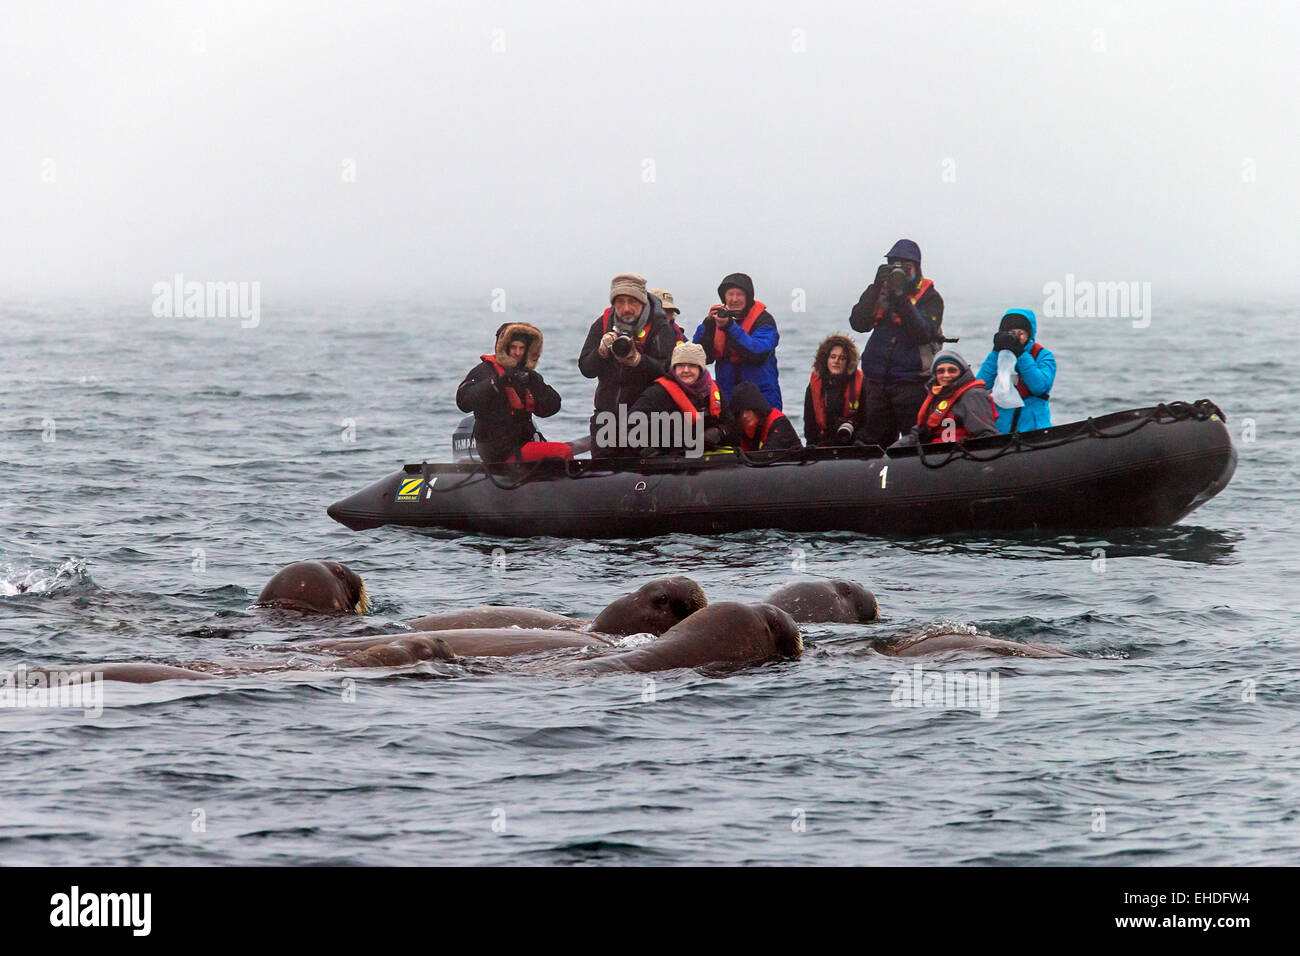 Tourists in inflatable boat watching and photographing group of walruses (Odobenus rosmarus) swimming in the Arctic - Stock Image